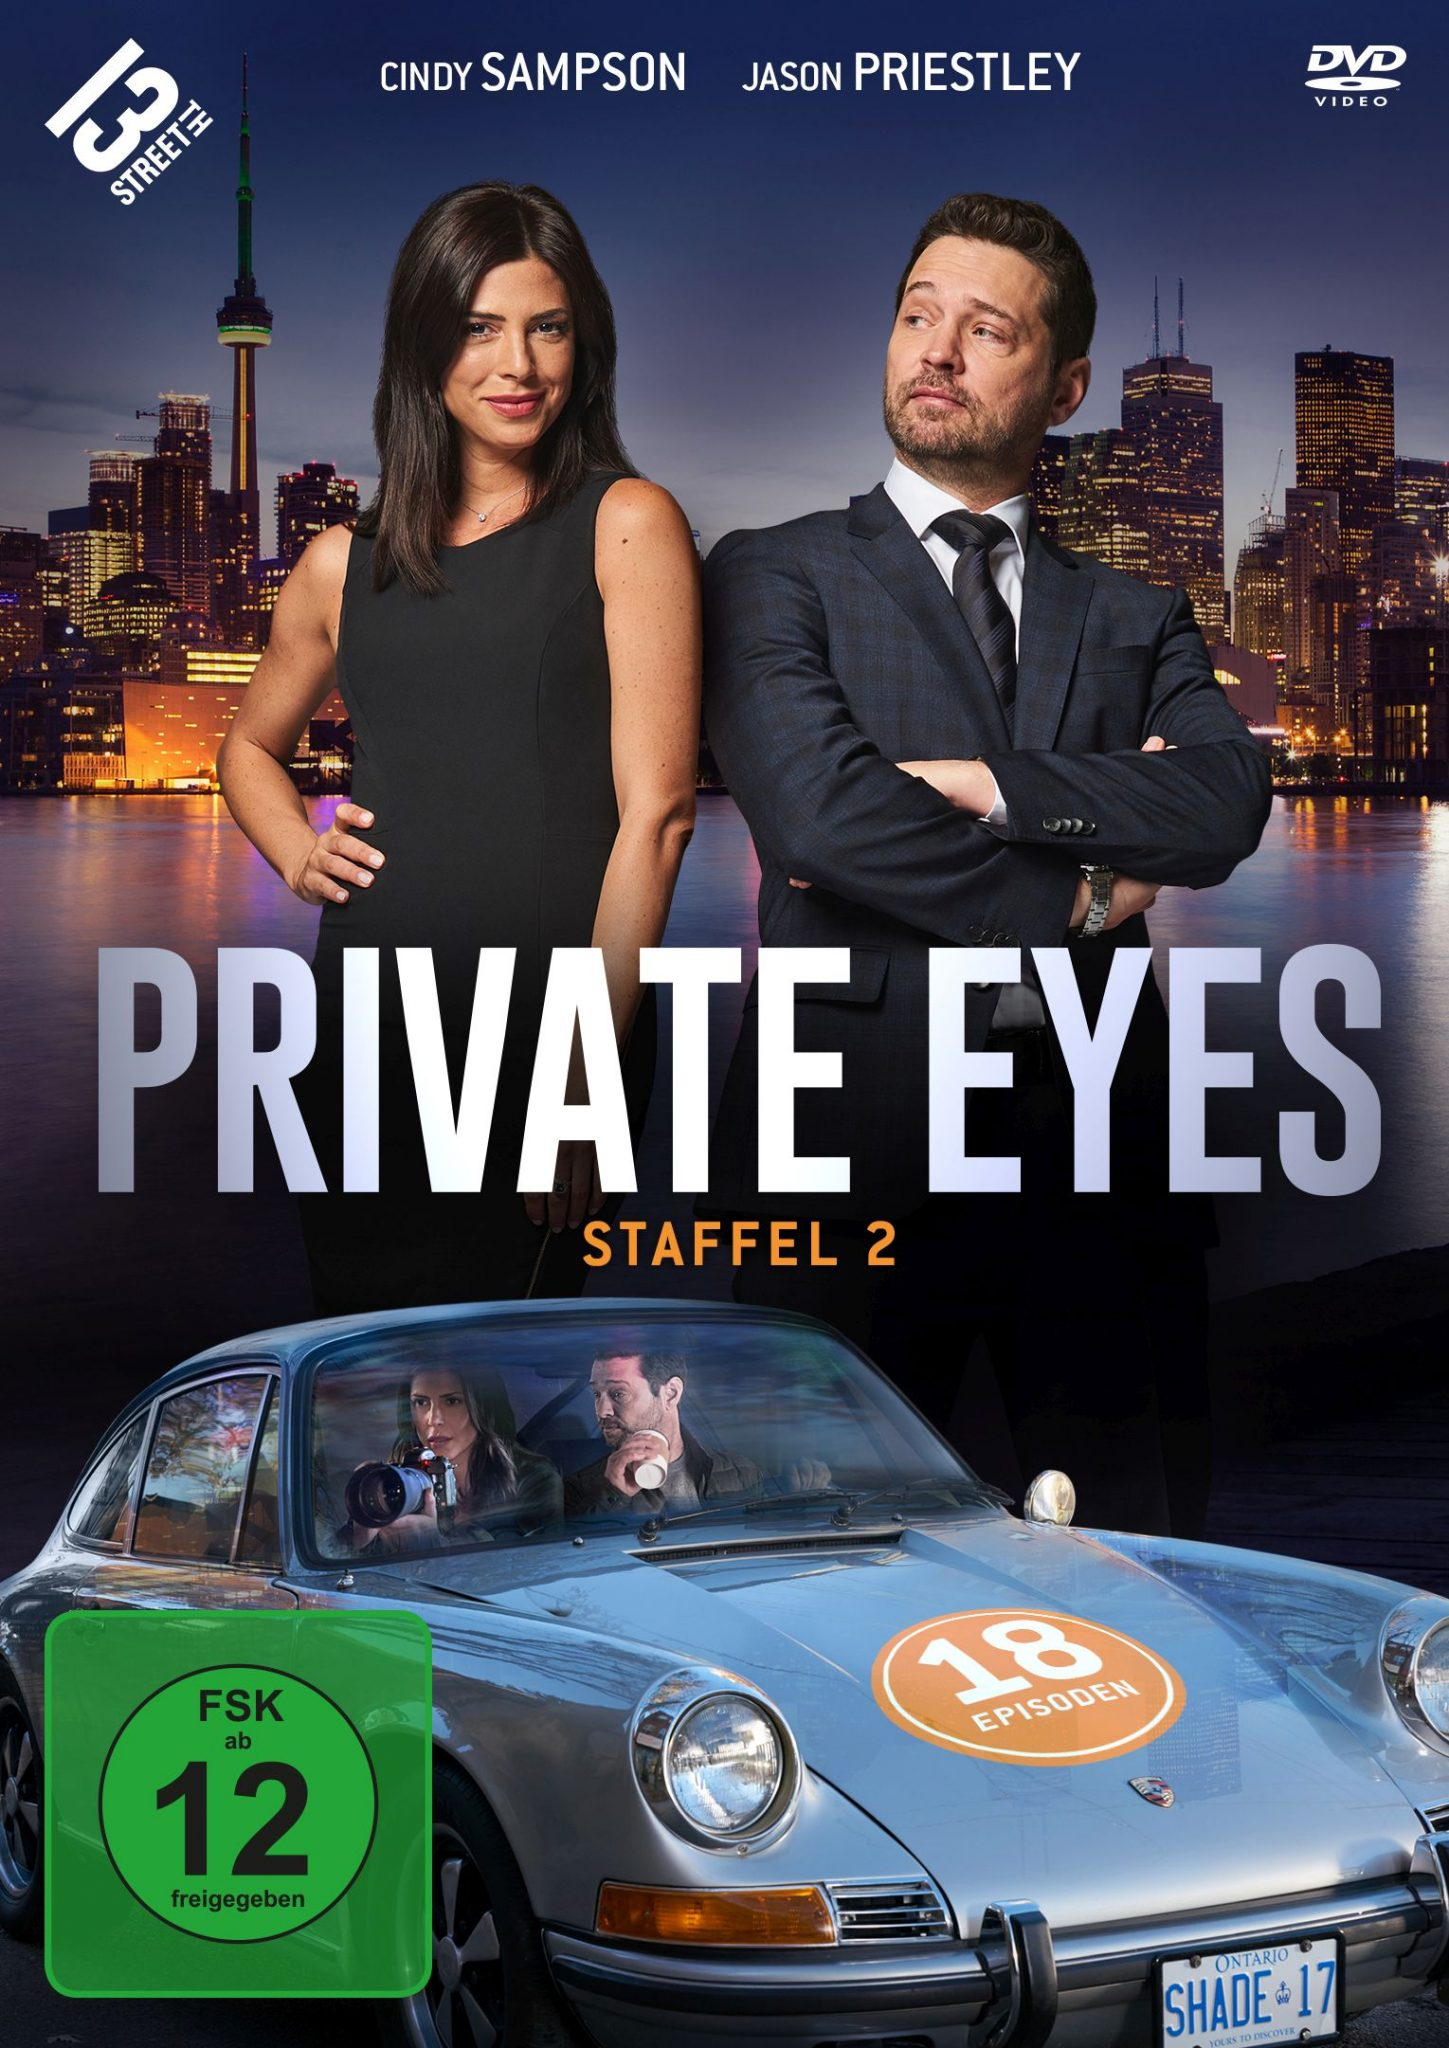 Private Eyes - Staffel 2 DVD